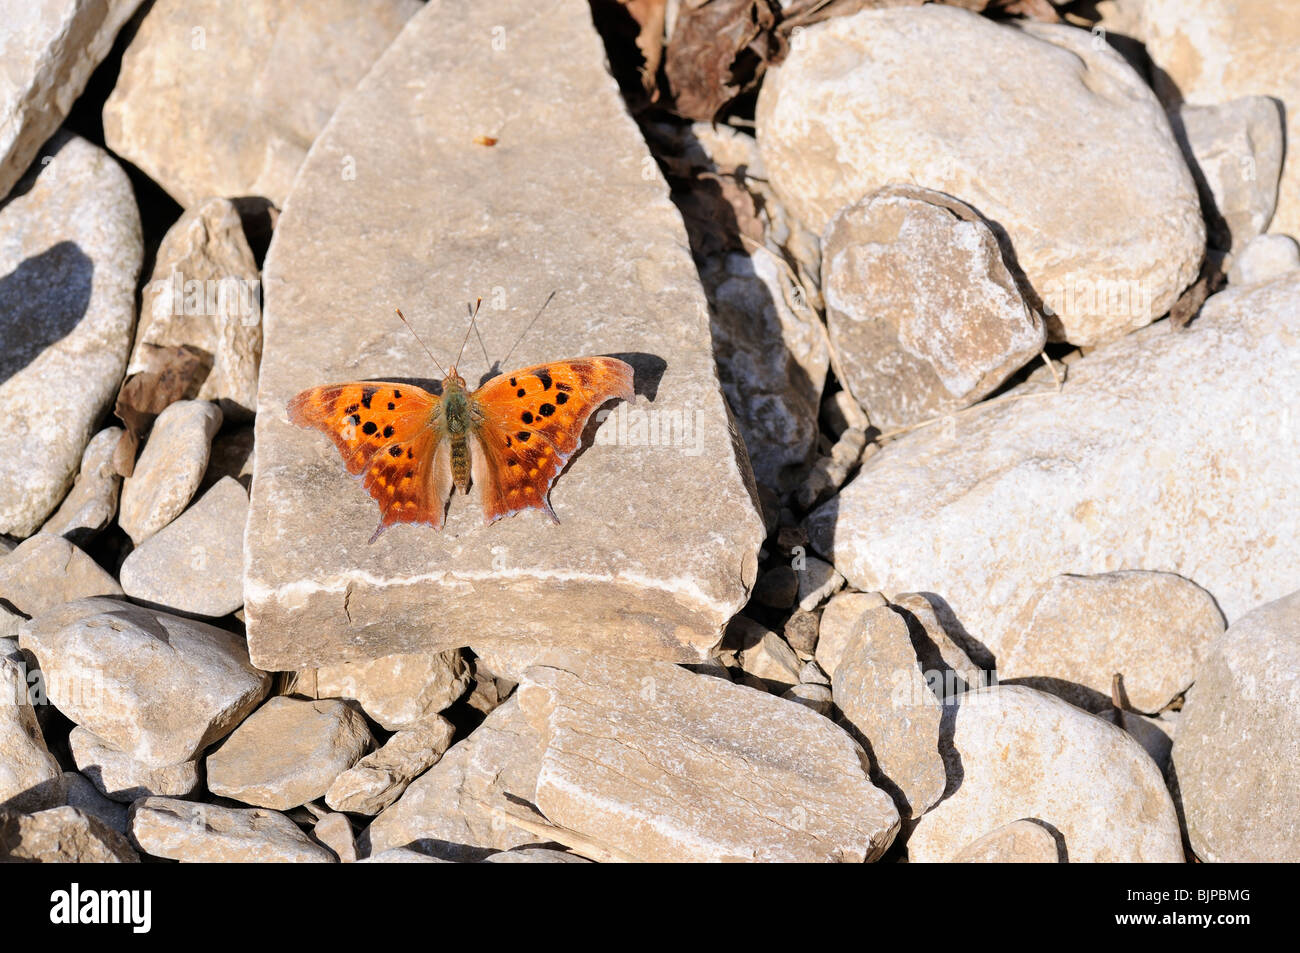 A Question Mark , a type of Brush-footed butterfly on limestone. - Stock Image